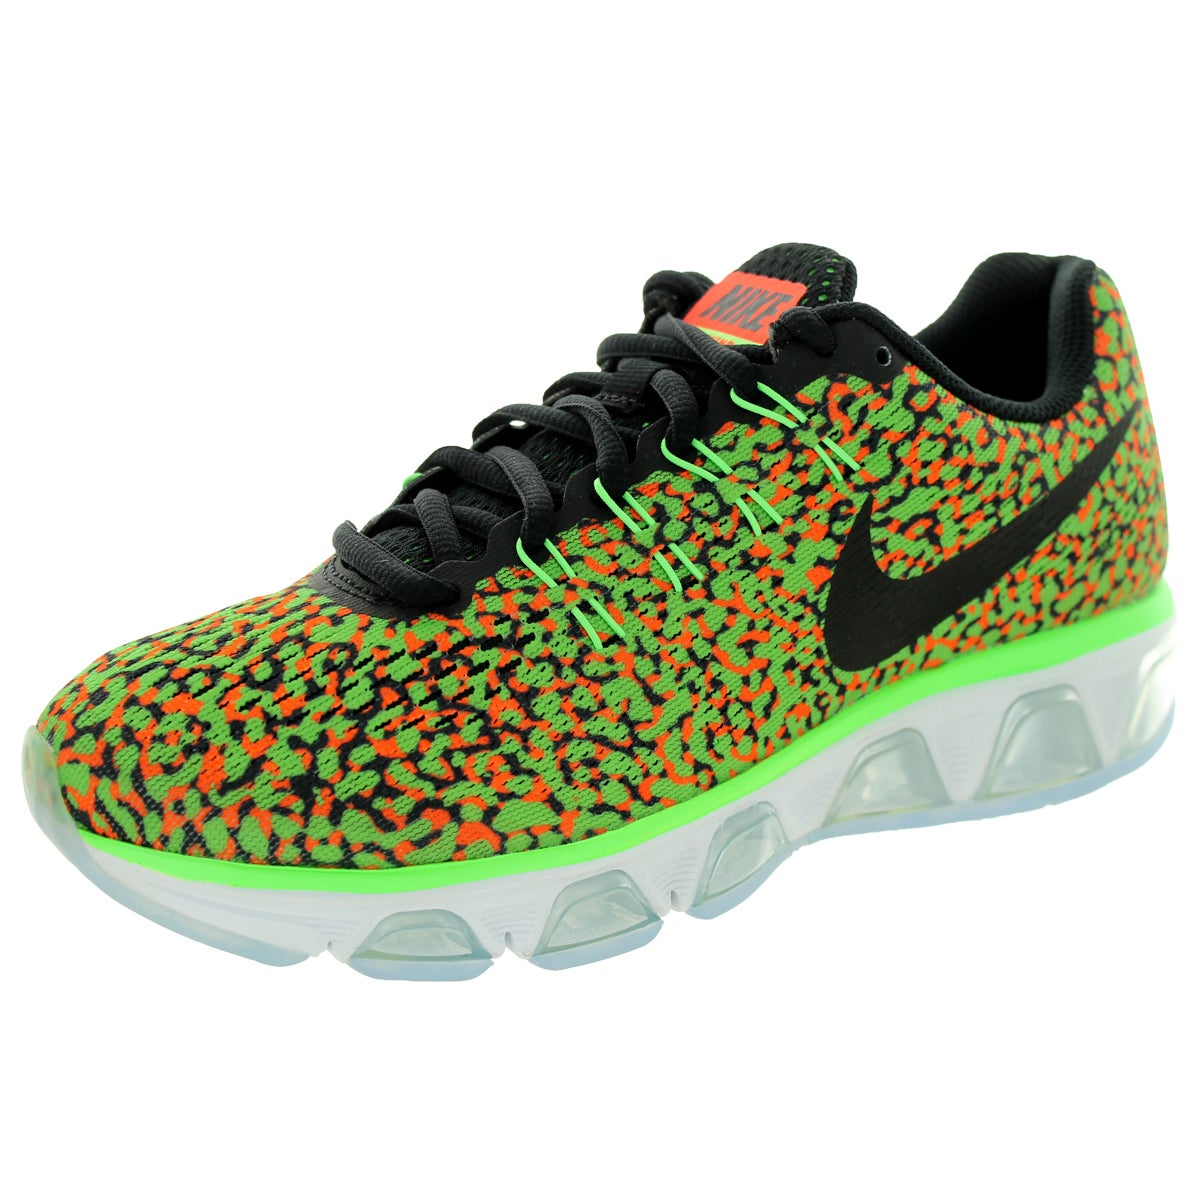 official photos 44925 00530 ... release date shop nike womens air max tailwind 8 green black orange  white running shoe on ...